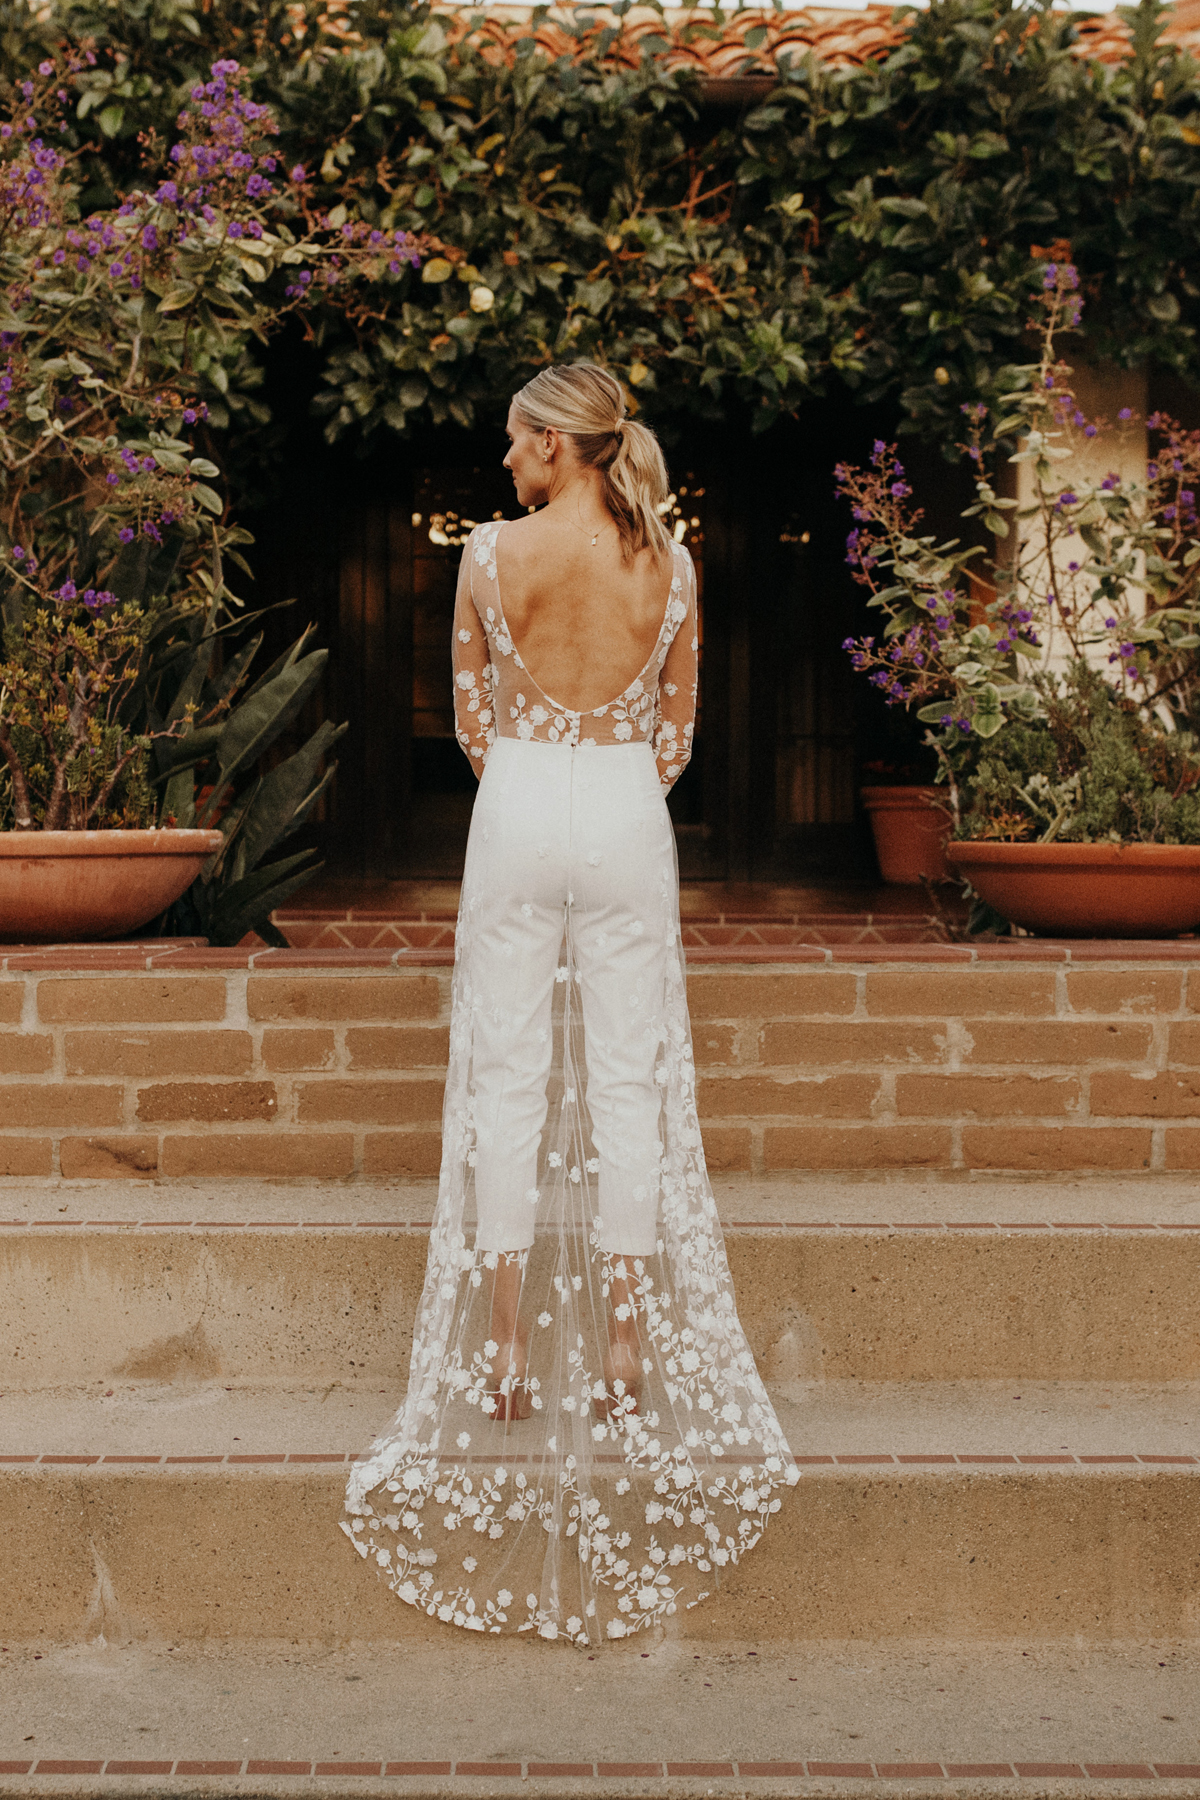 Rime Arodaky patsy white lace bridal embroidered tulle and crepe jumpsuit wedding rehearsal dinner outfit, wedding weekend bridal outfit inspiration